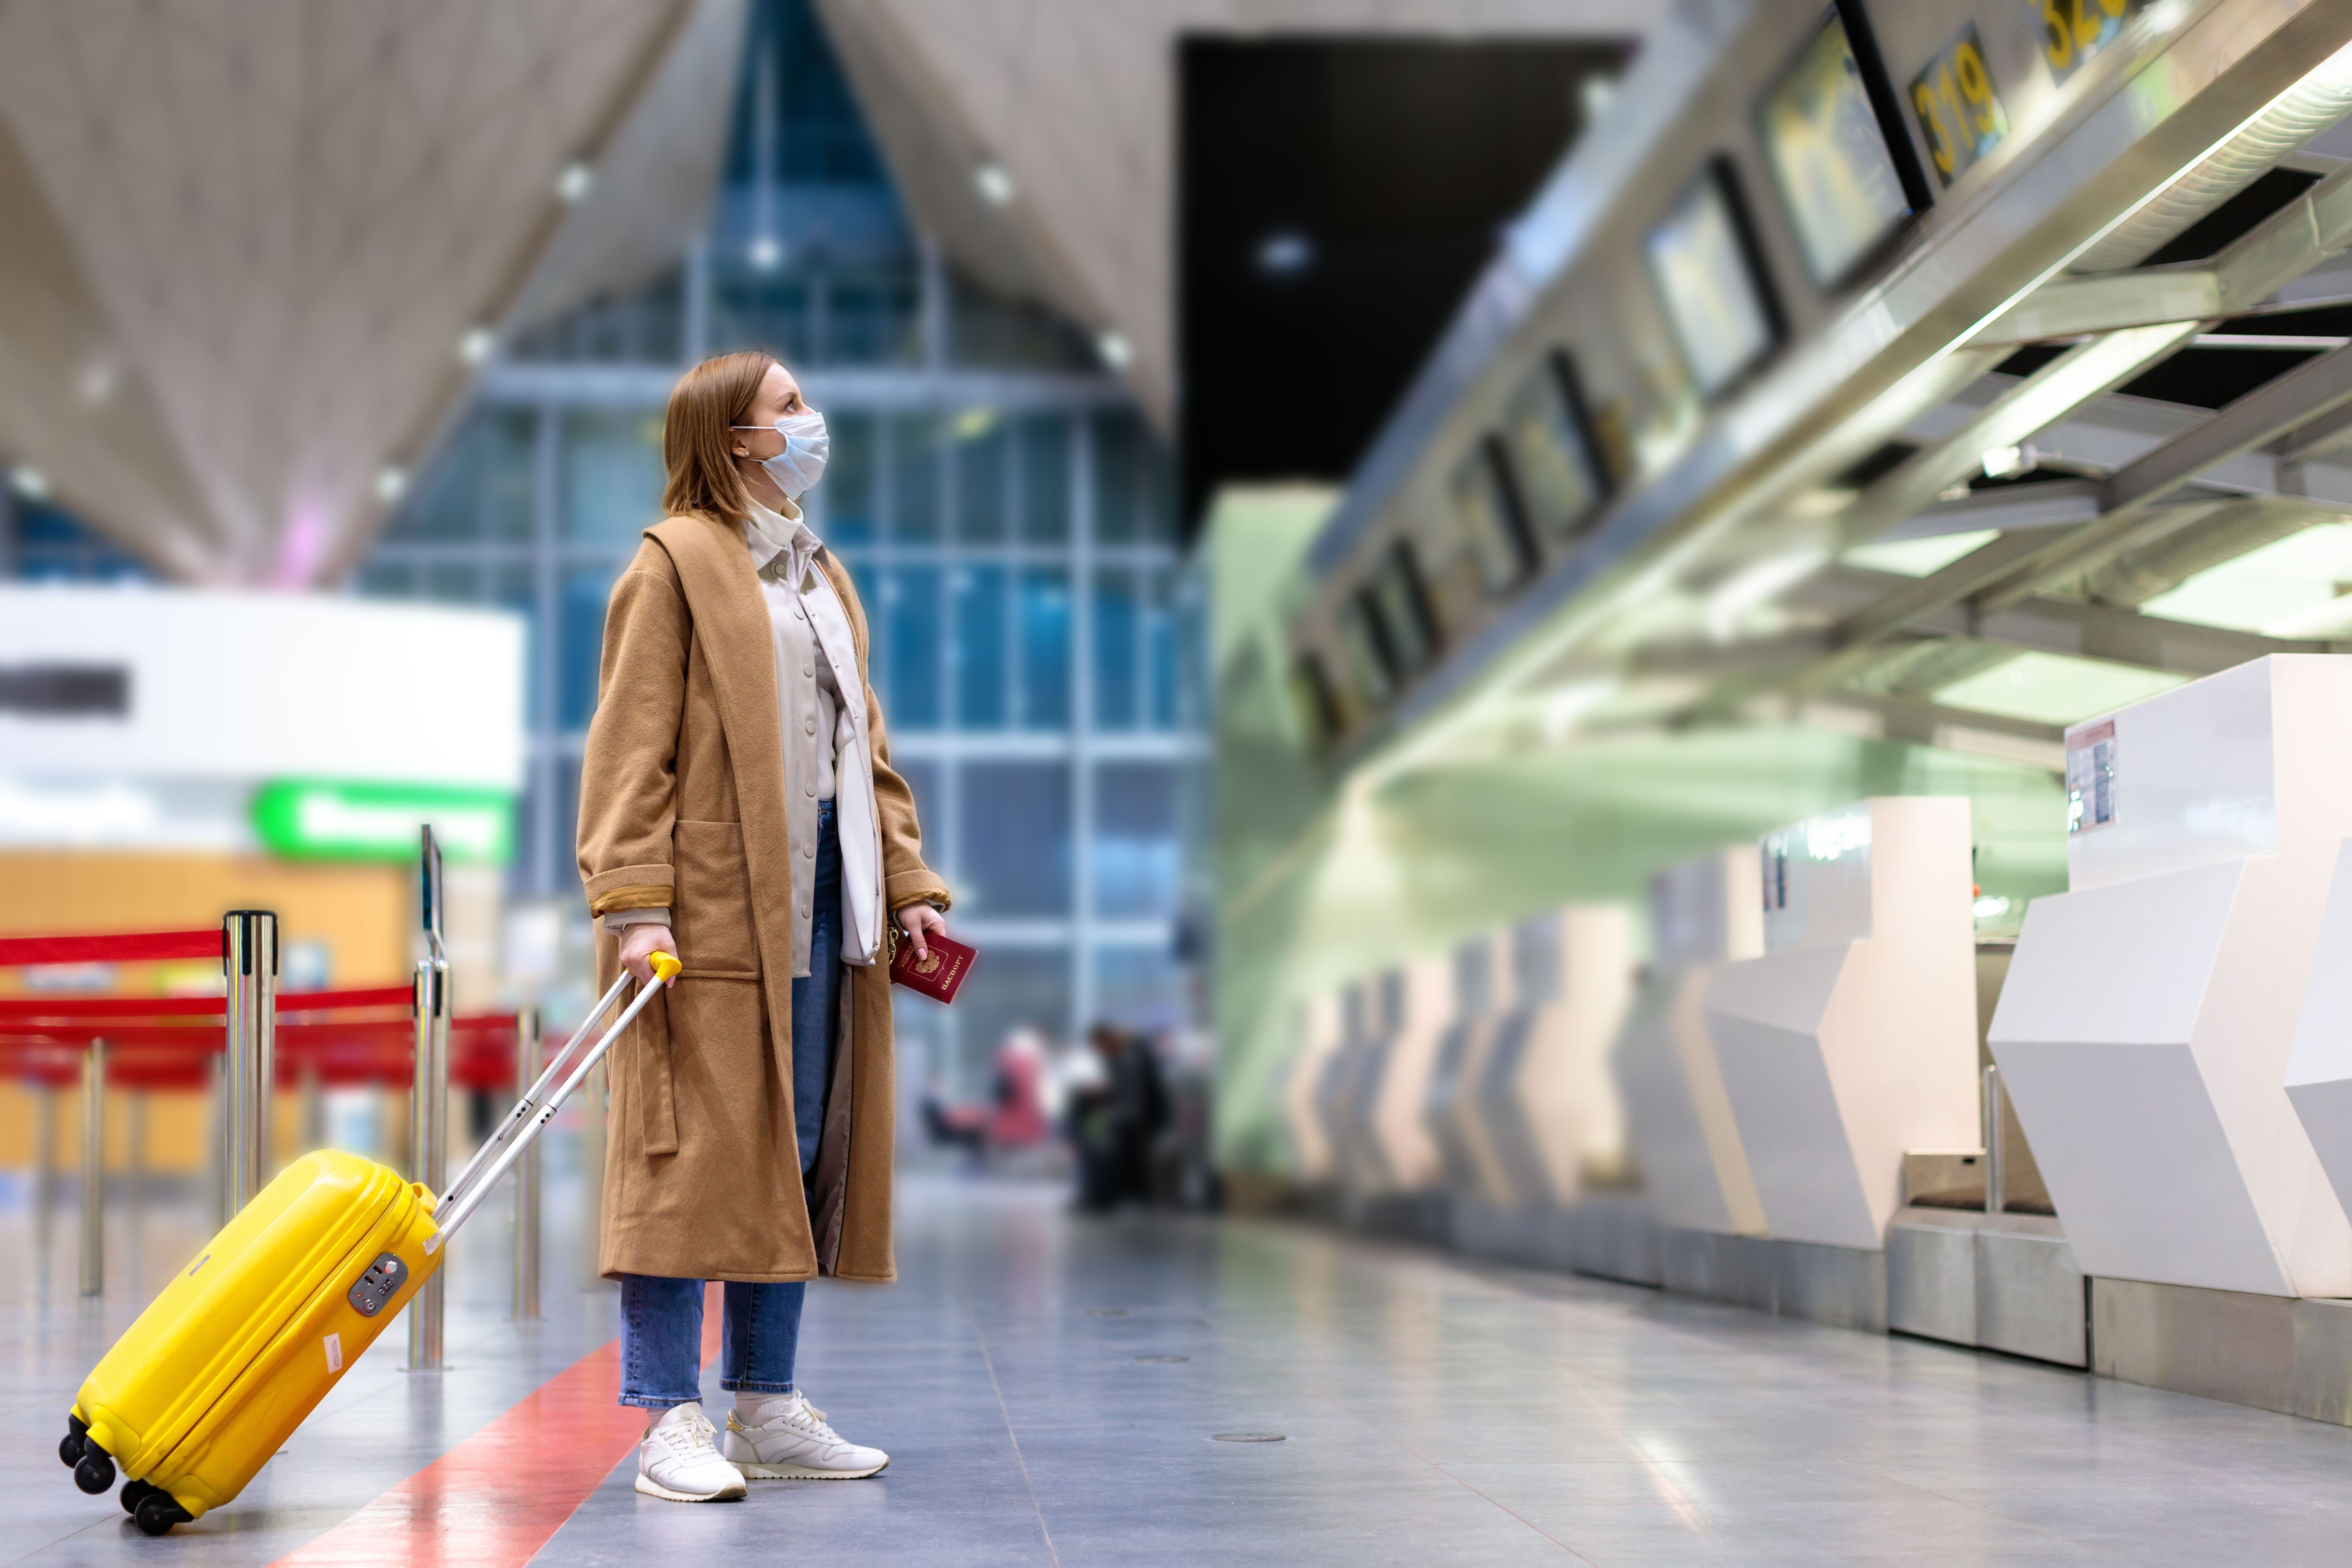 Woman with luggage standing at in front of a check-in counter at the airport terminal during the Covid-19 pandemic   Photo: Shutterstock